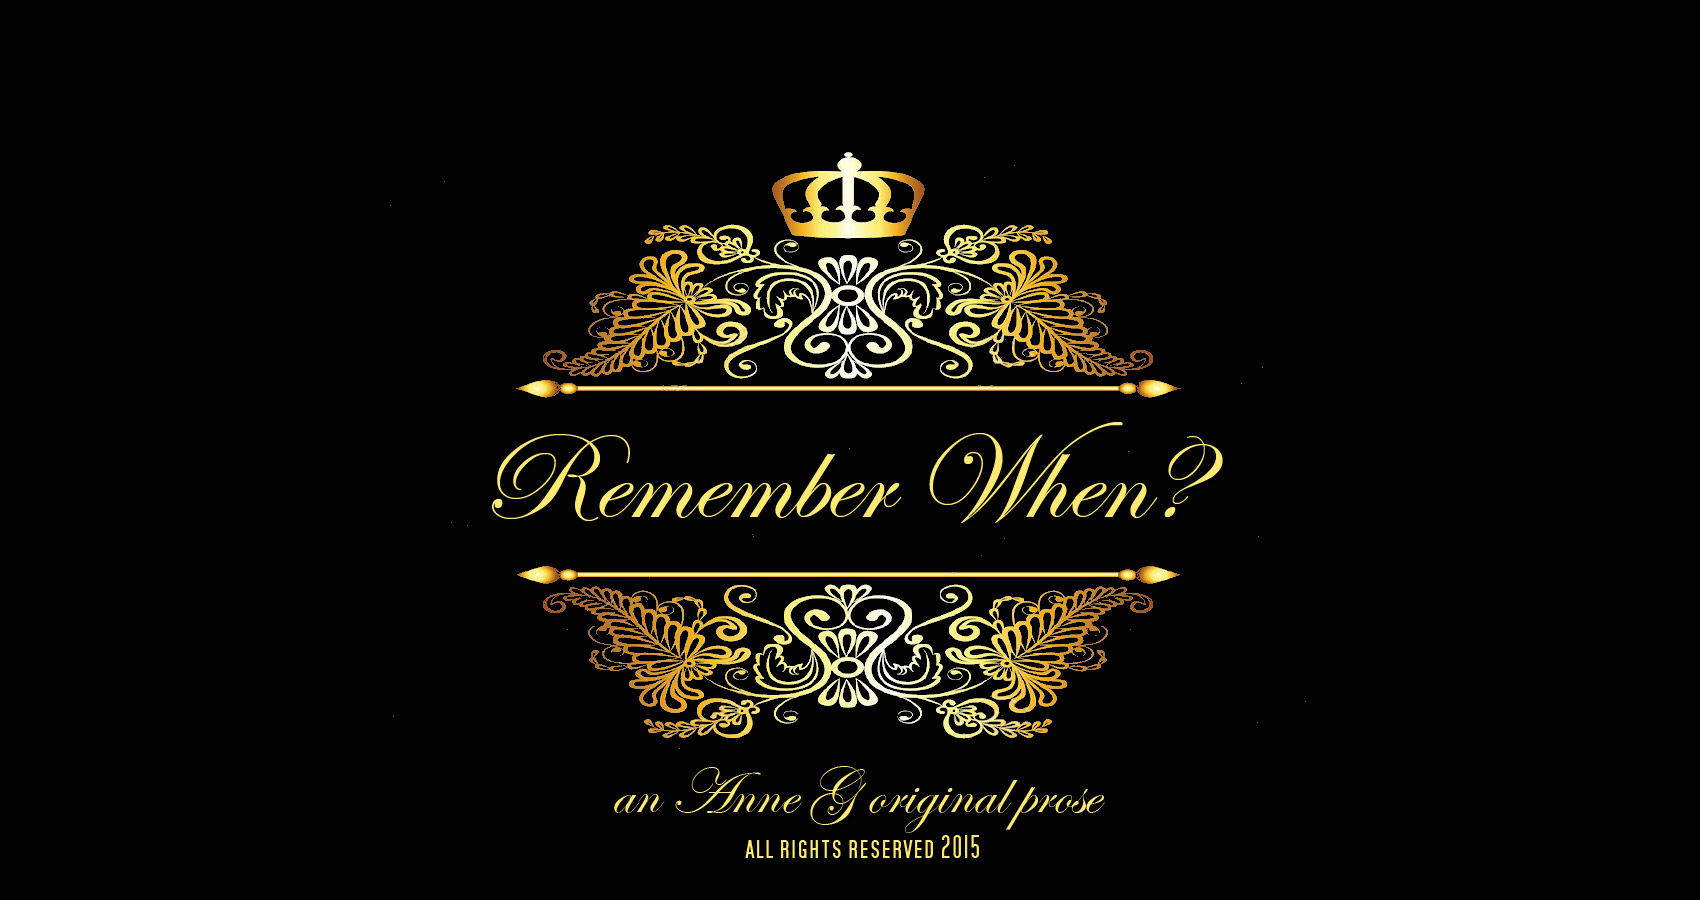 Remebre When? by Anne G original prose at spillwords.com